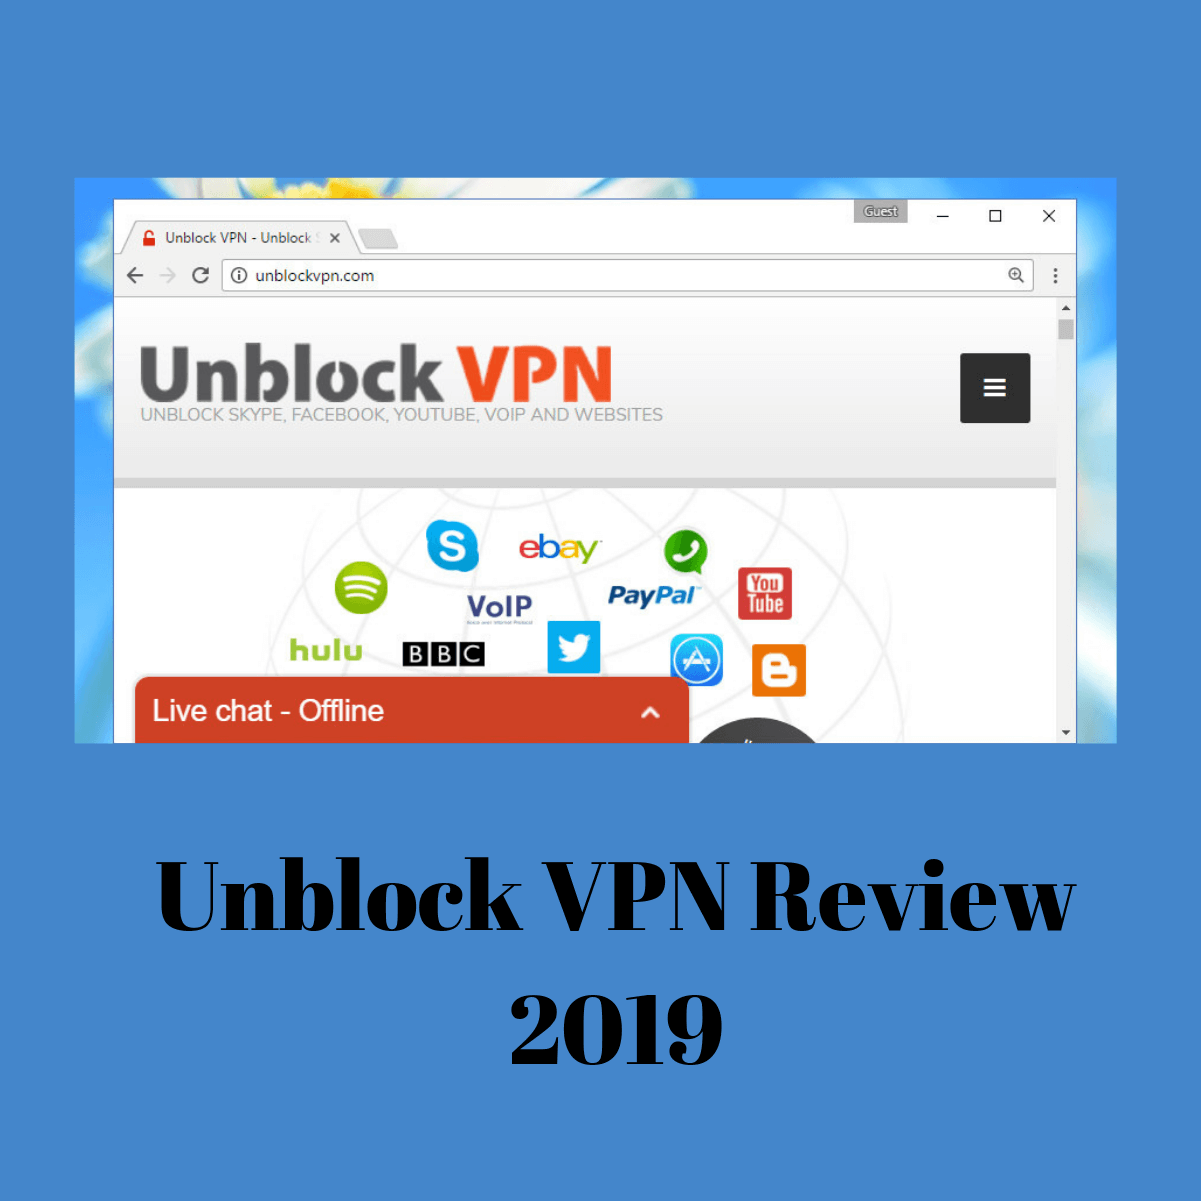 Unblock VPN Review 2019- The Good and the Bad